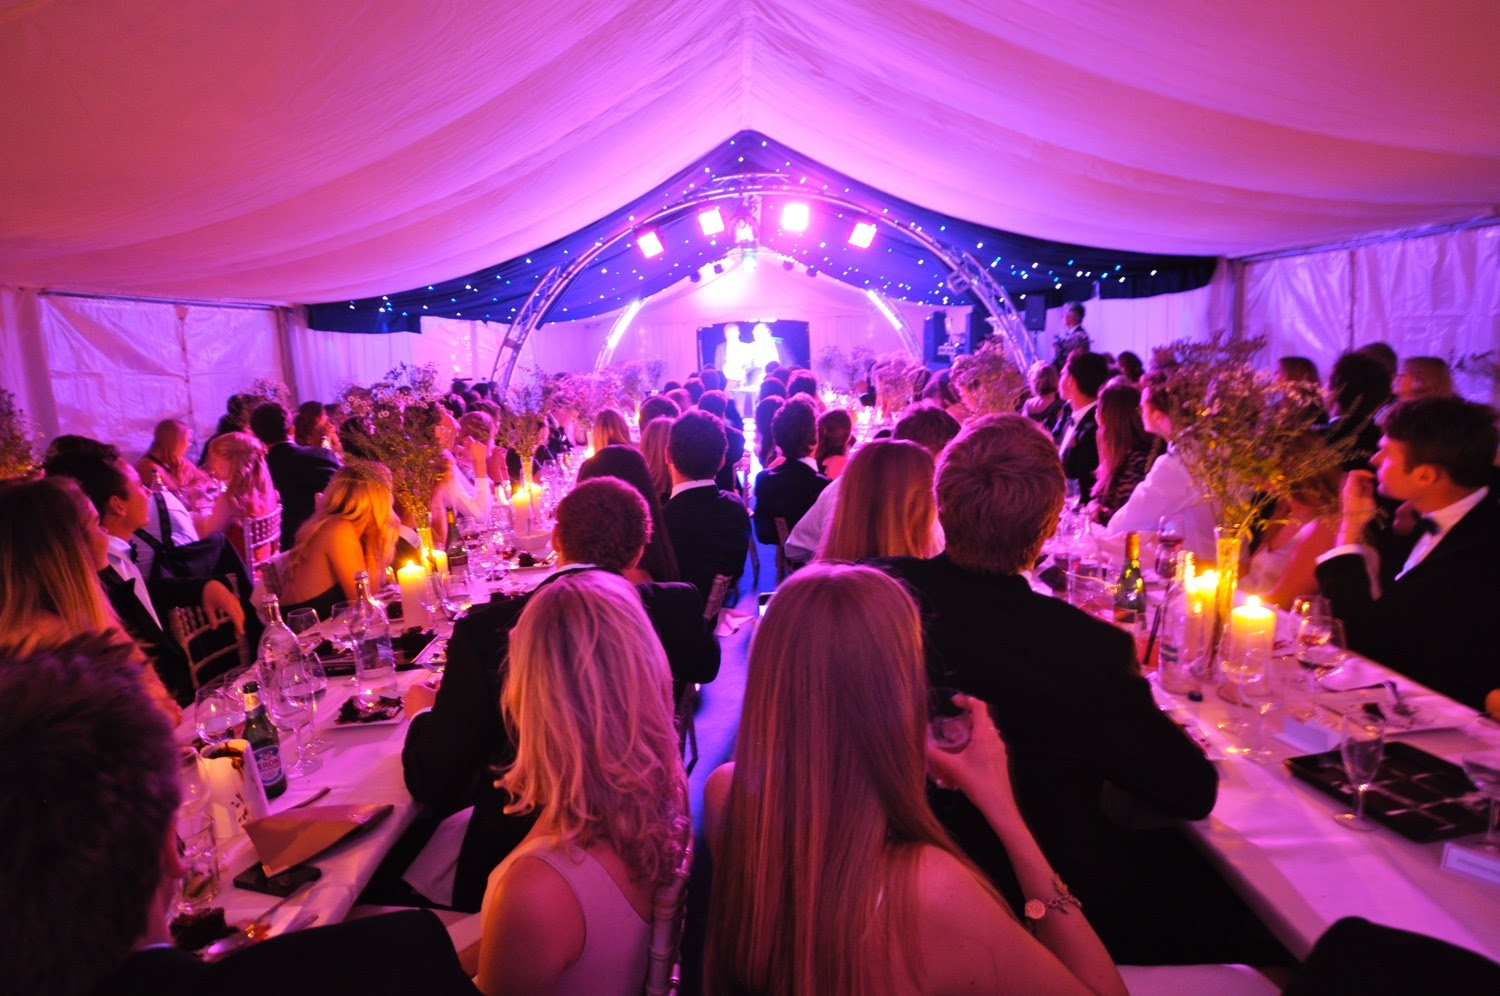 Seated partygoers at a party in a marquee